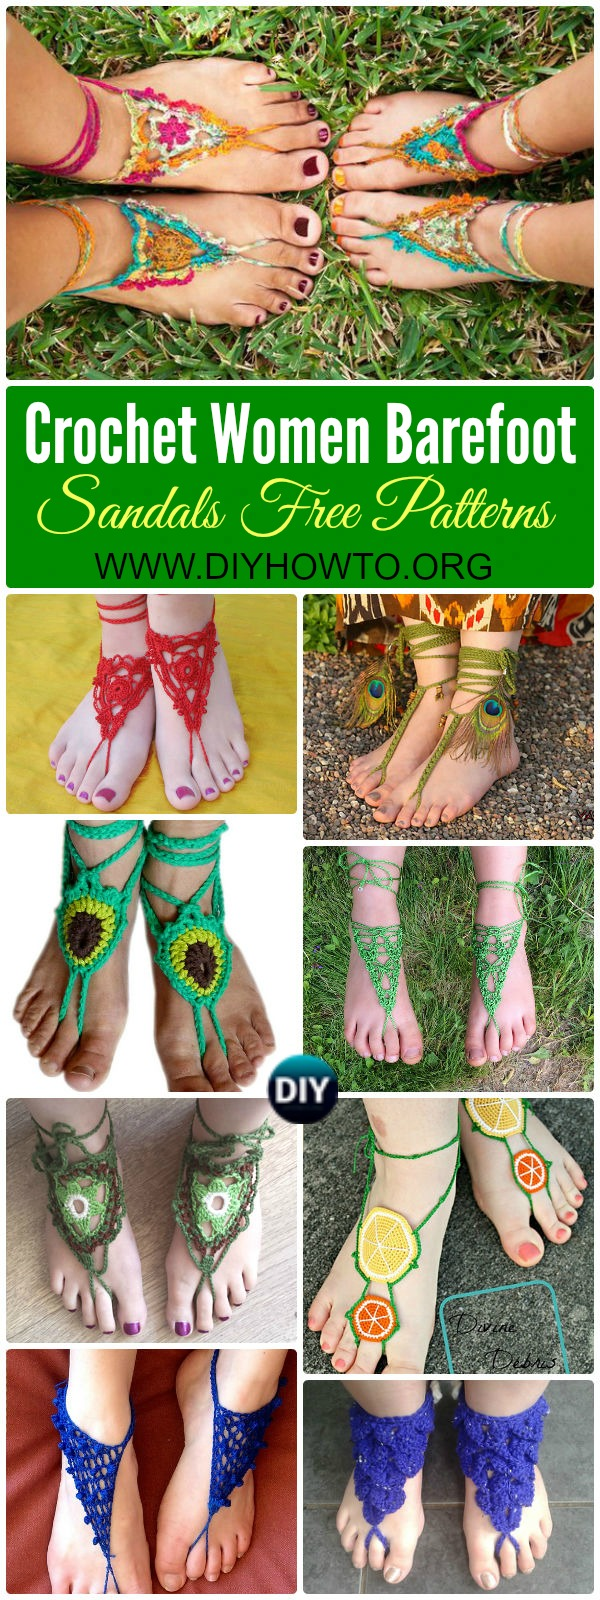 Crochet Women Barefoot Sandal Anklets Free Patterns: Crochet Adult Barefoot Sandals, Beach Sandals, Bridal Sandals